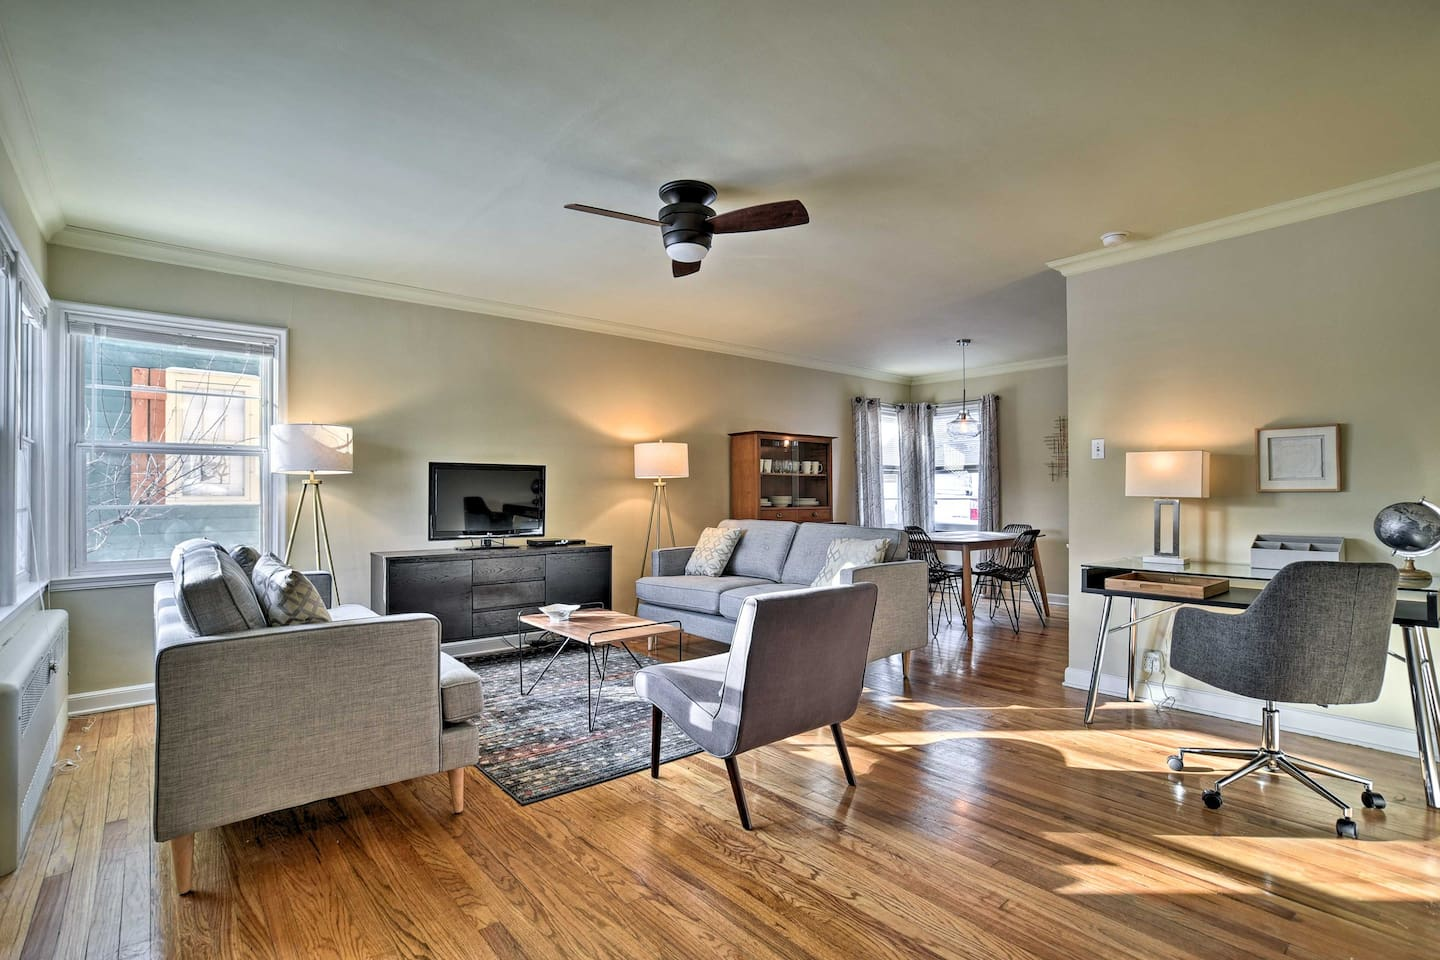 Explore Bozeman from this vacation rental townhome!